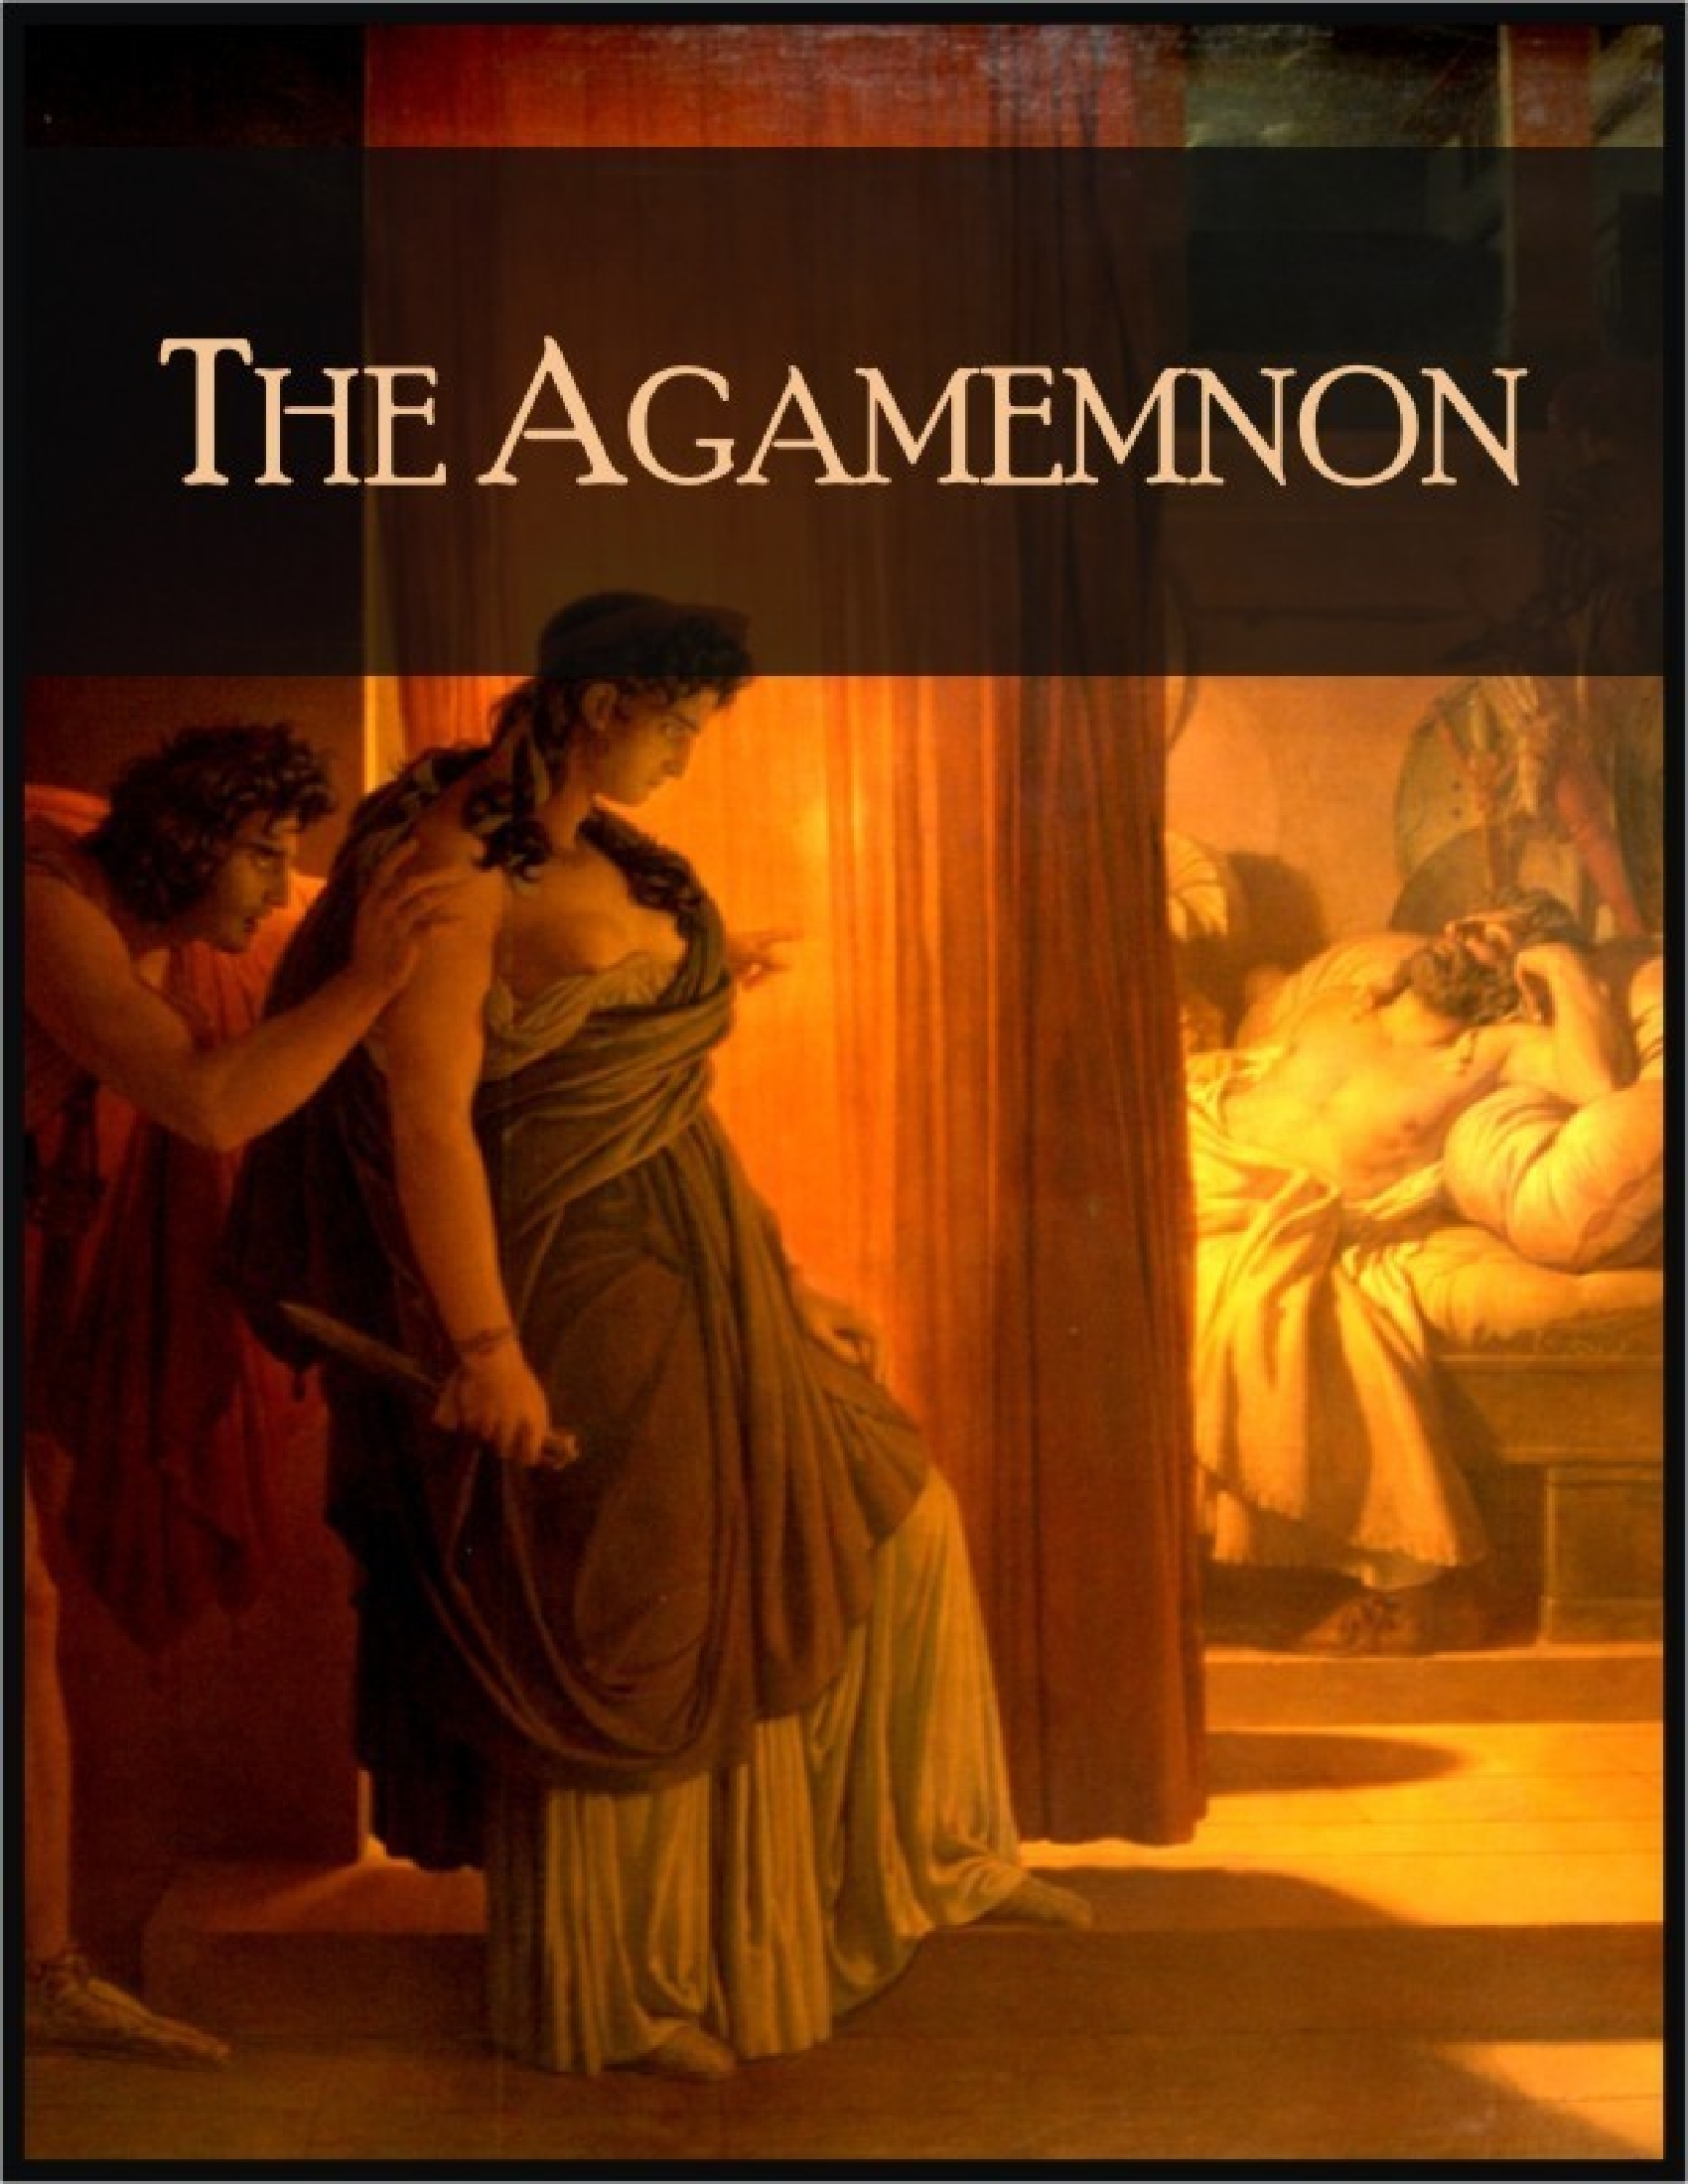 a summary of agamemnon the first book of the oresteian trilogy by aeschylus The oresteian trilogy: agamemnon aeschylus' trilogy is about the culmination of the curse of the agamemnon is the first of the oresteia trilogy.